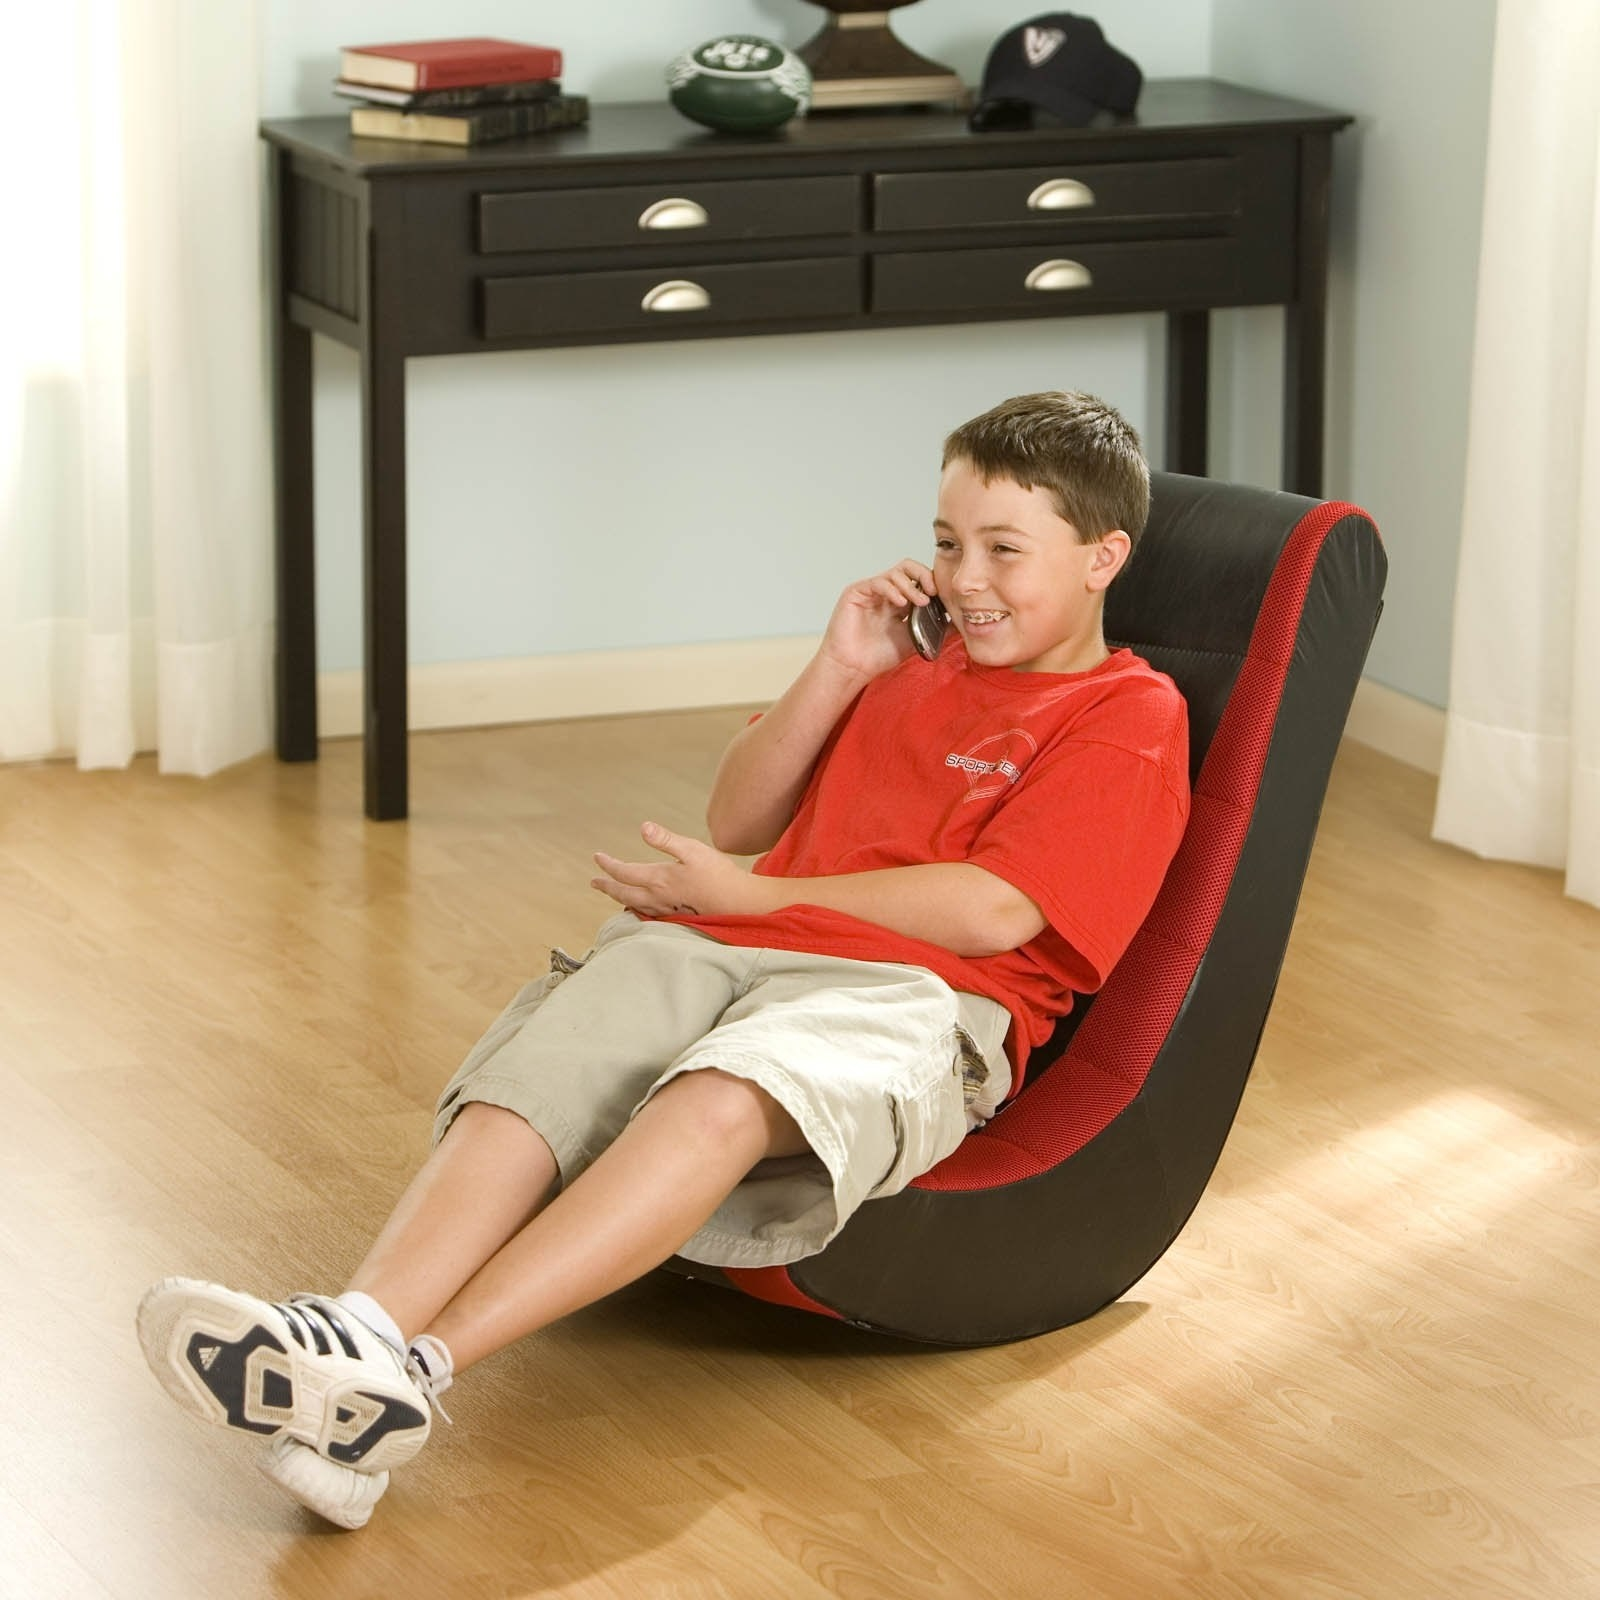 Model is sitting on the red and black gaming chair while talking on their phone